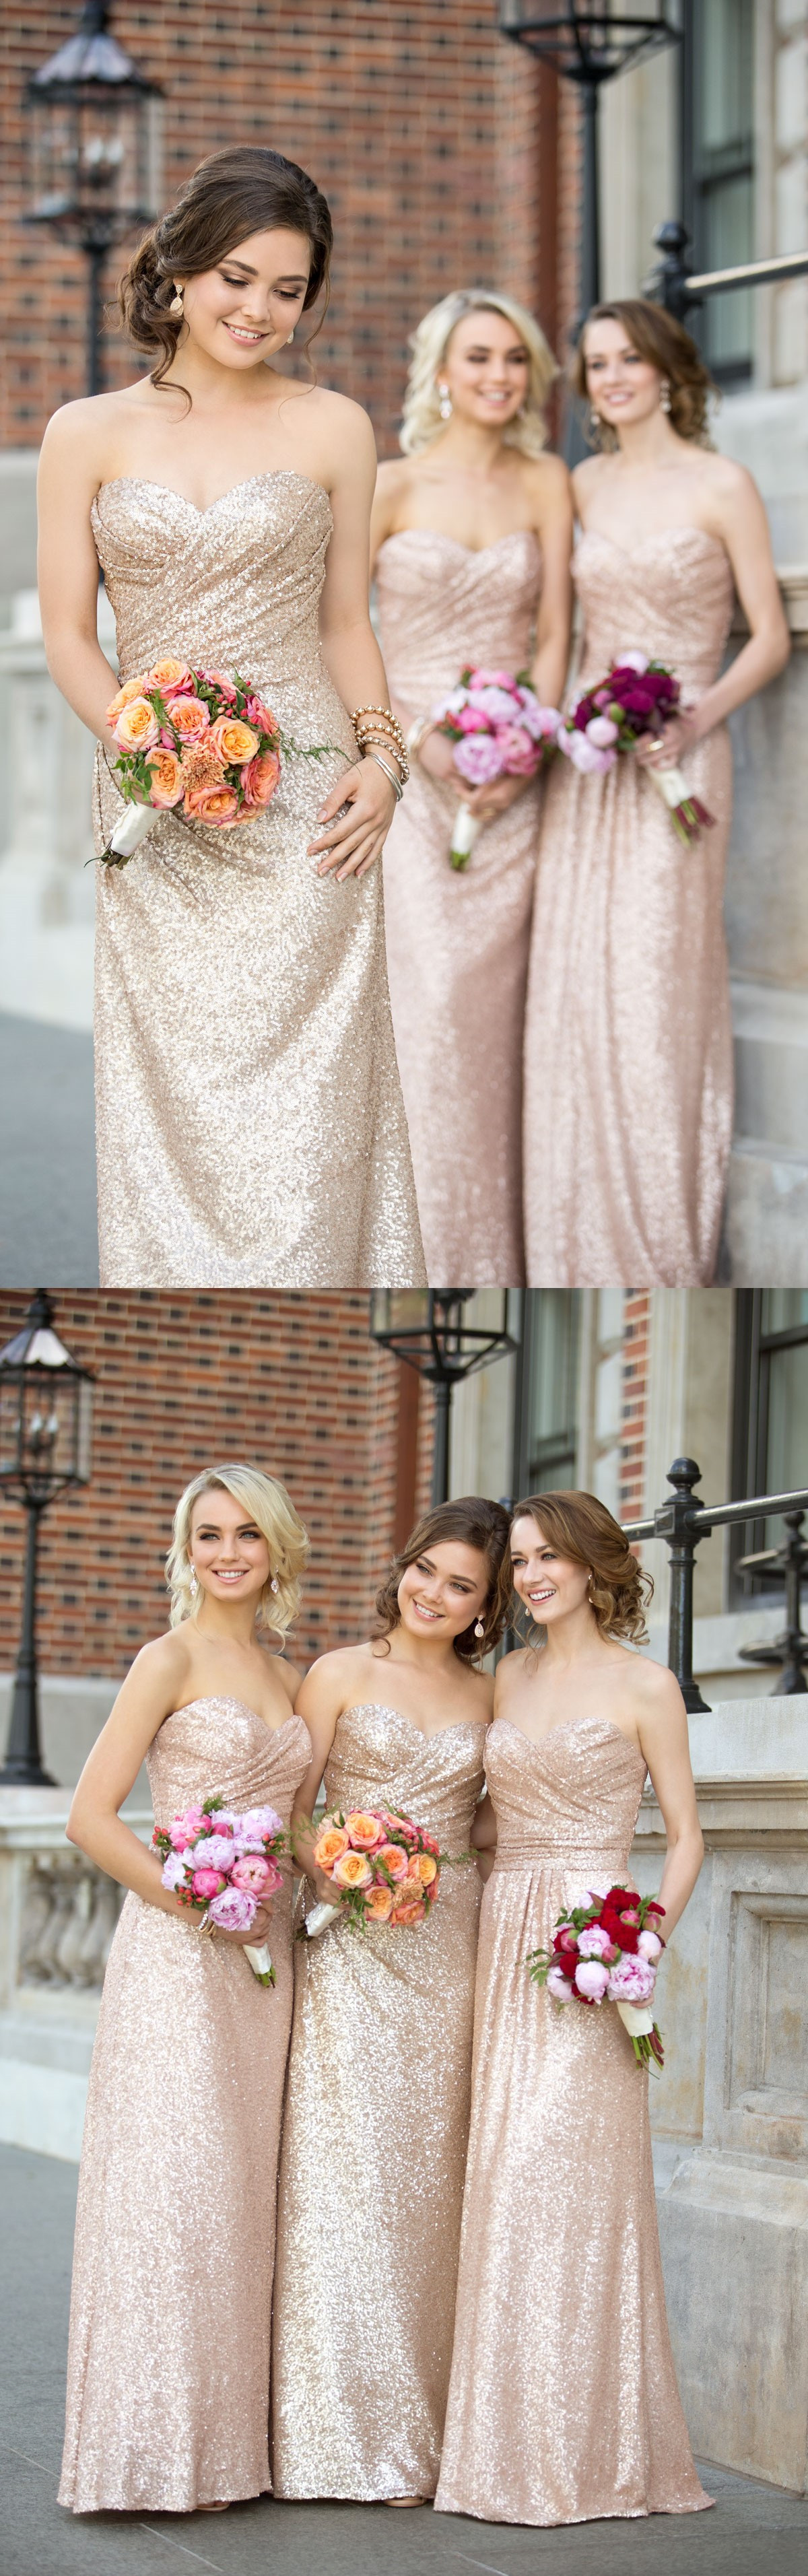 Sparkly strapless rose gold long sequins bridesmaid dress from sparkly strapless rose gold long sequins bridesmaid dress from modsele ombrellifo Images